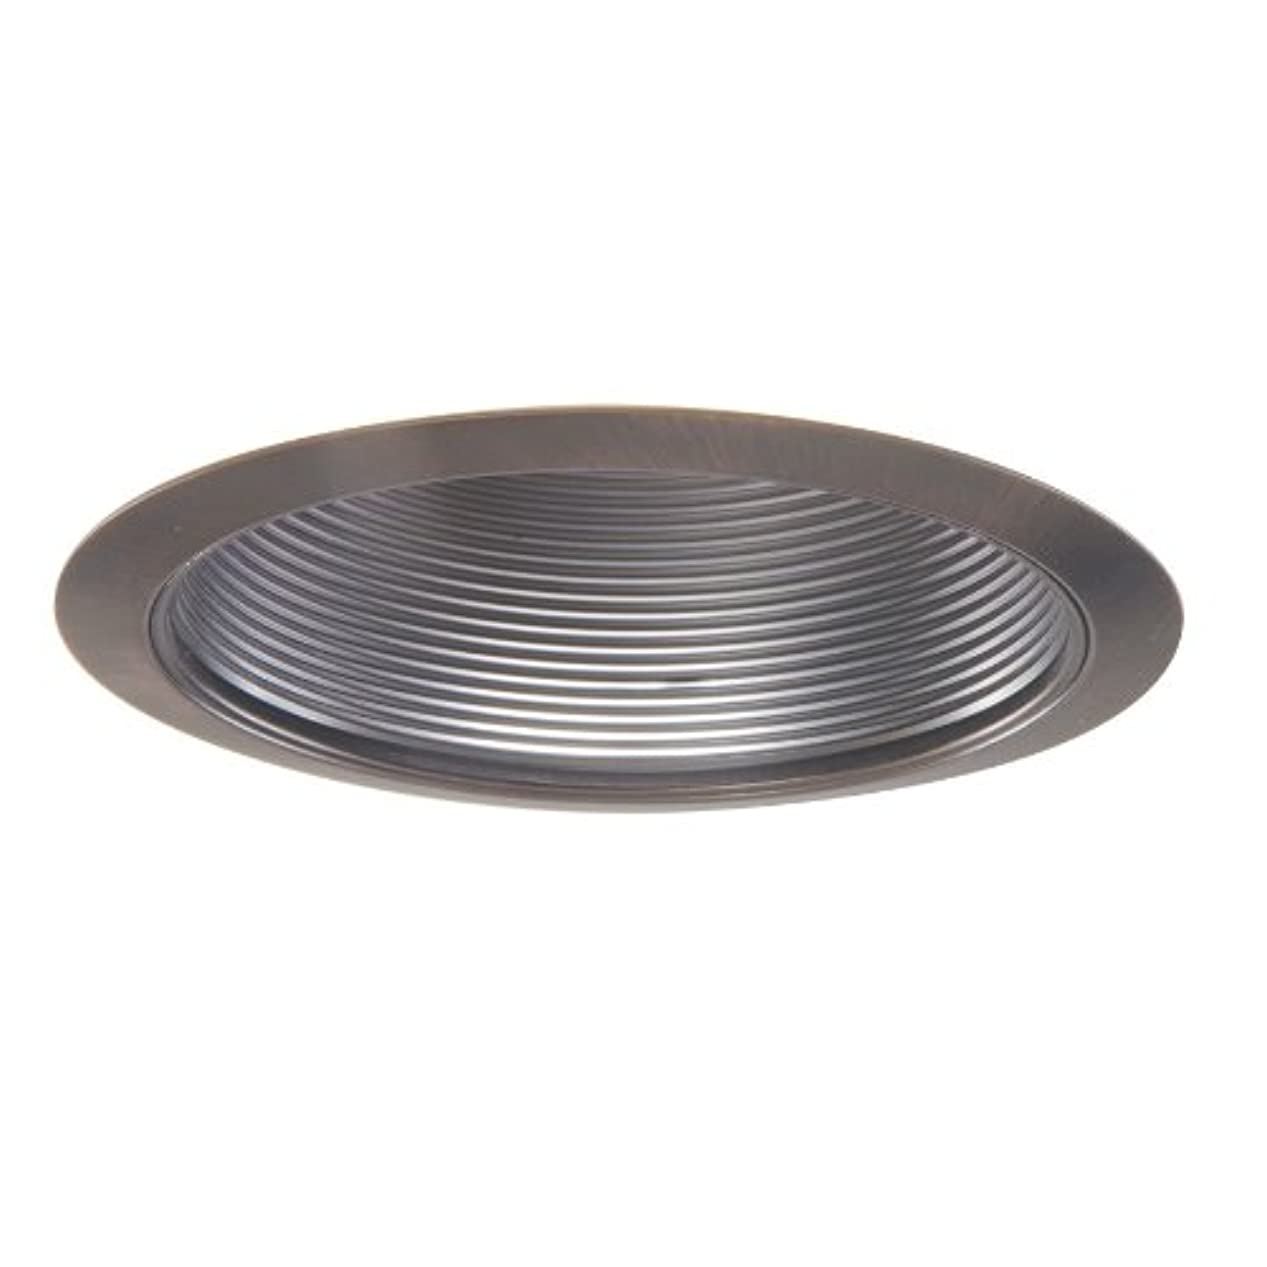 昆虫を見るくすぐったい第五Cooper Lighting 353TBZ 6-Inch Trim Metal Baffle, Tuscan Bronze by Cooper Lighting